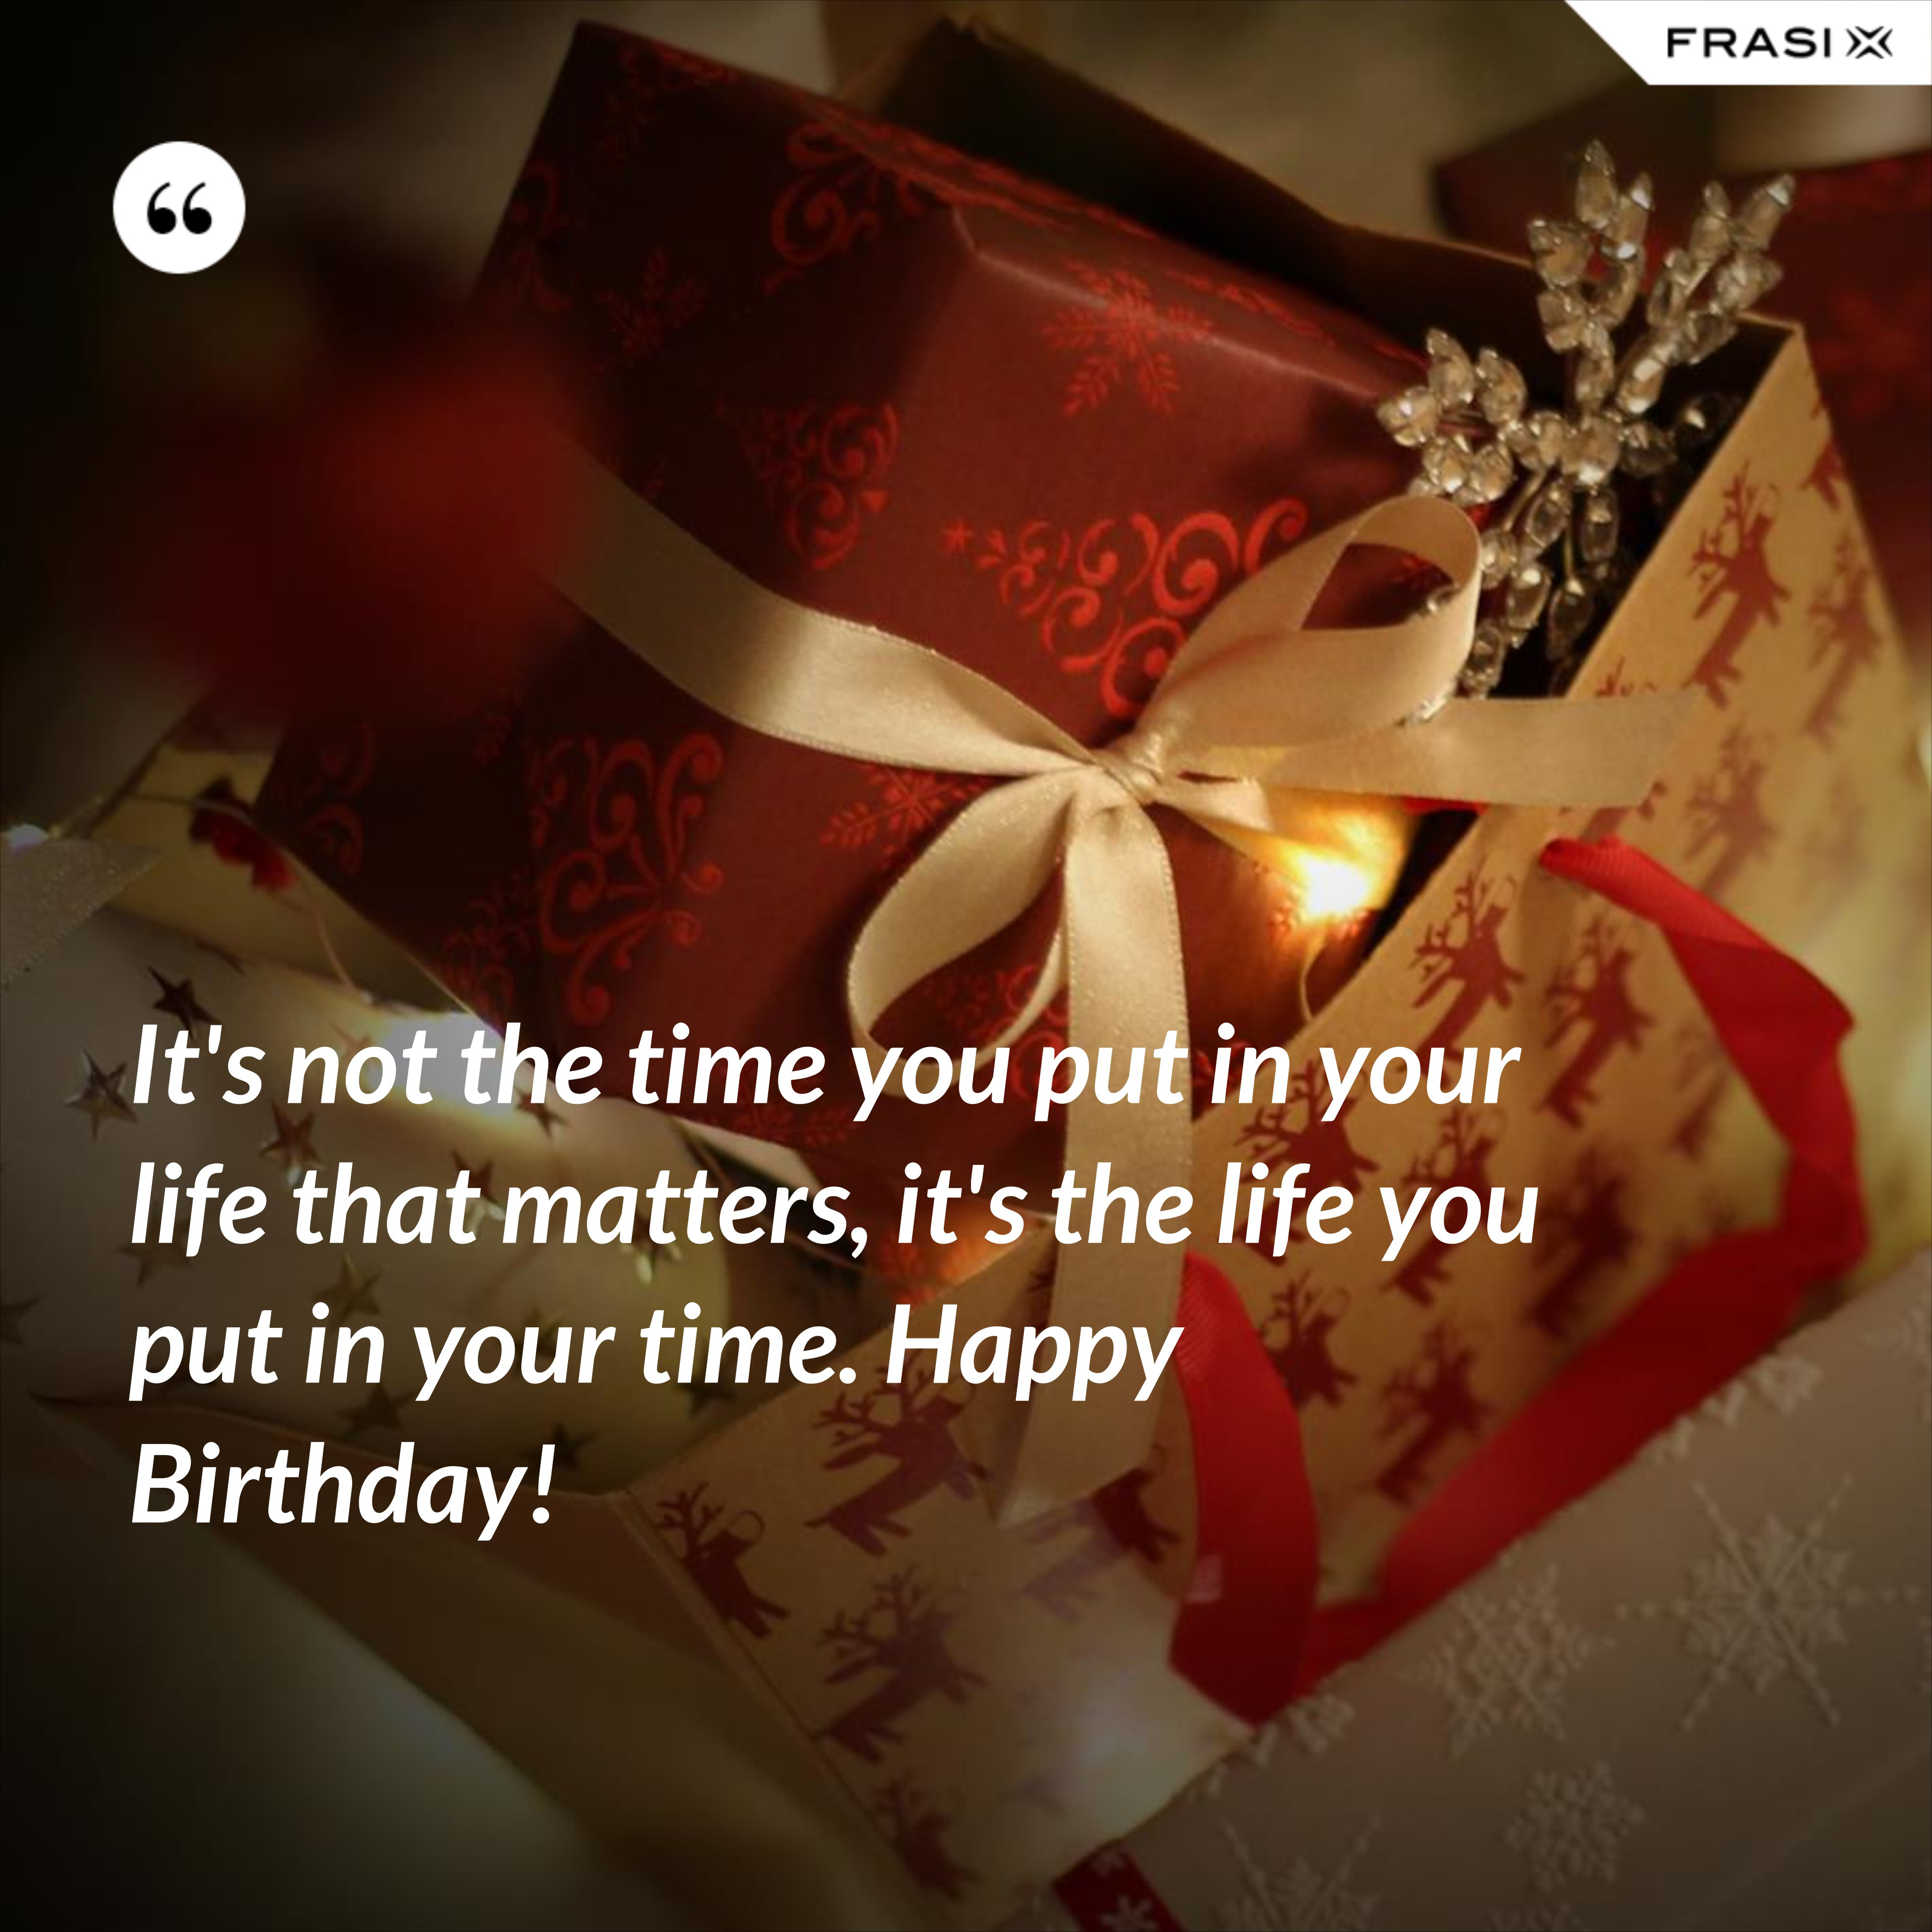 It's not the time you put in your life that matters, it's the life you put in your time. Happy Birthday! - Anonimo